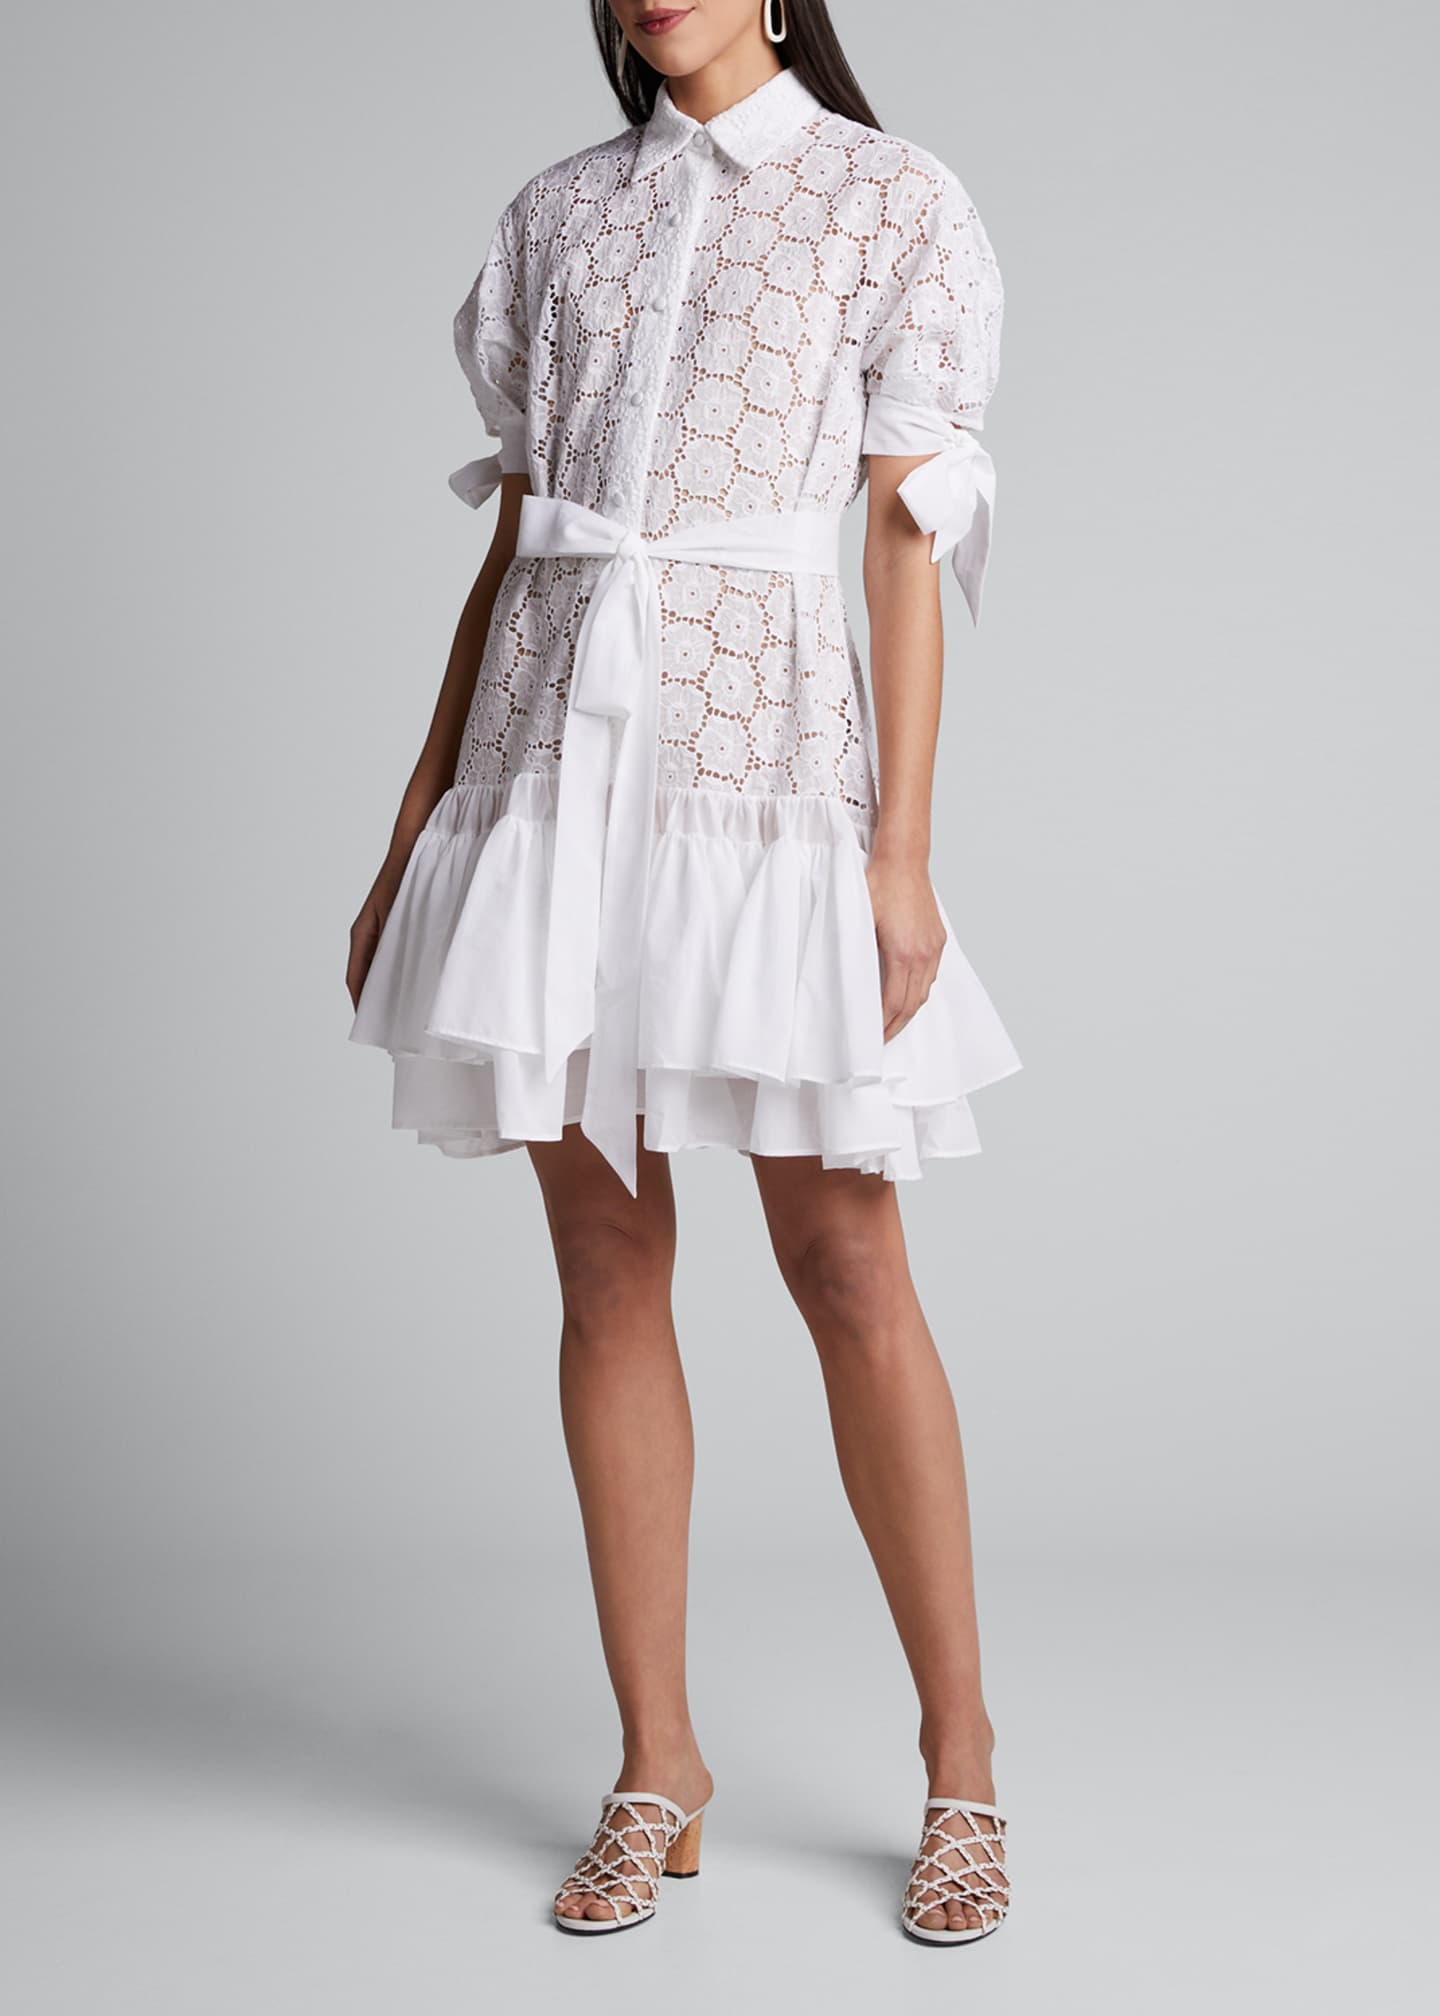 Evi Grintela Madrasa Lace Short Dress